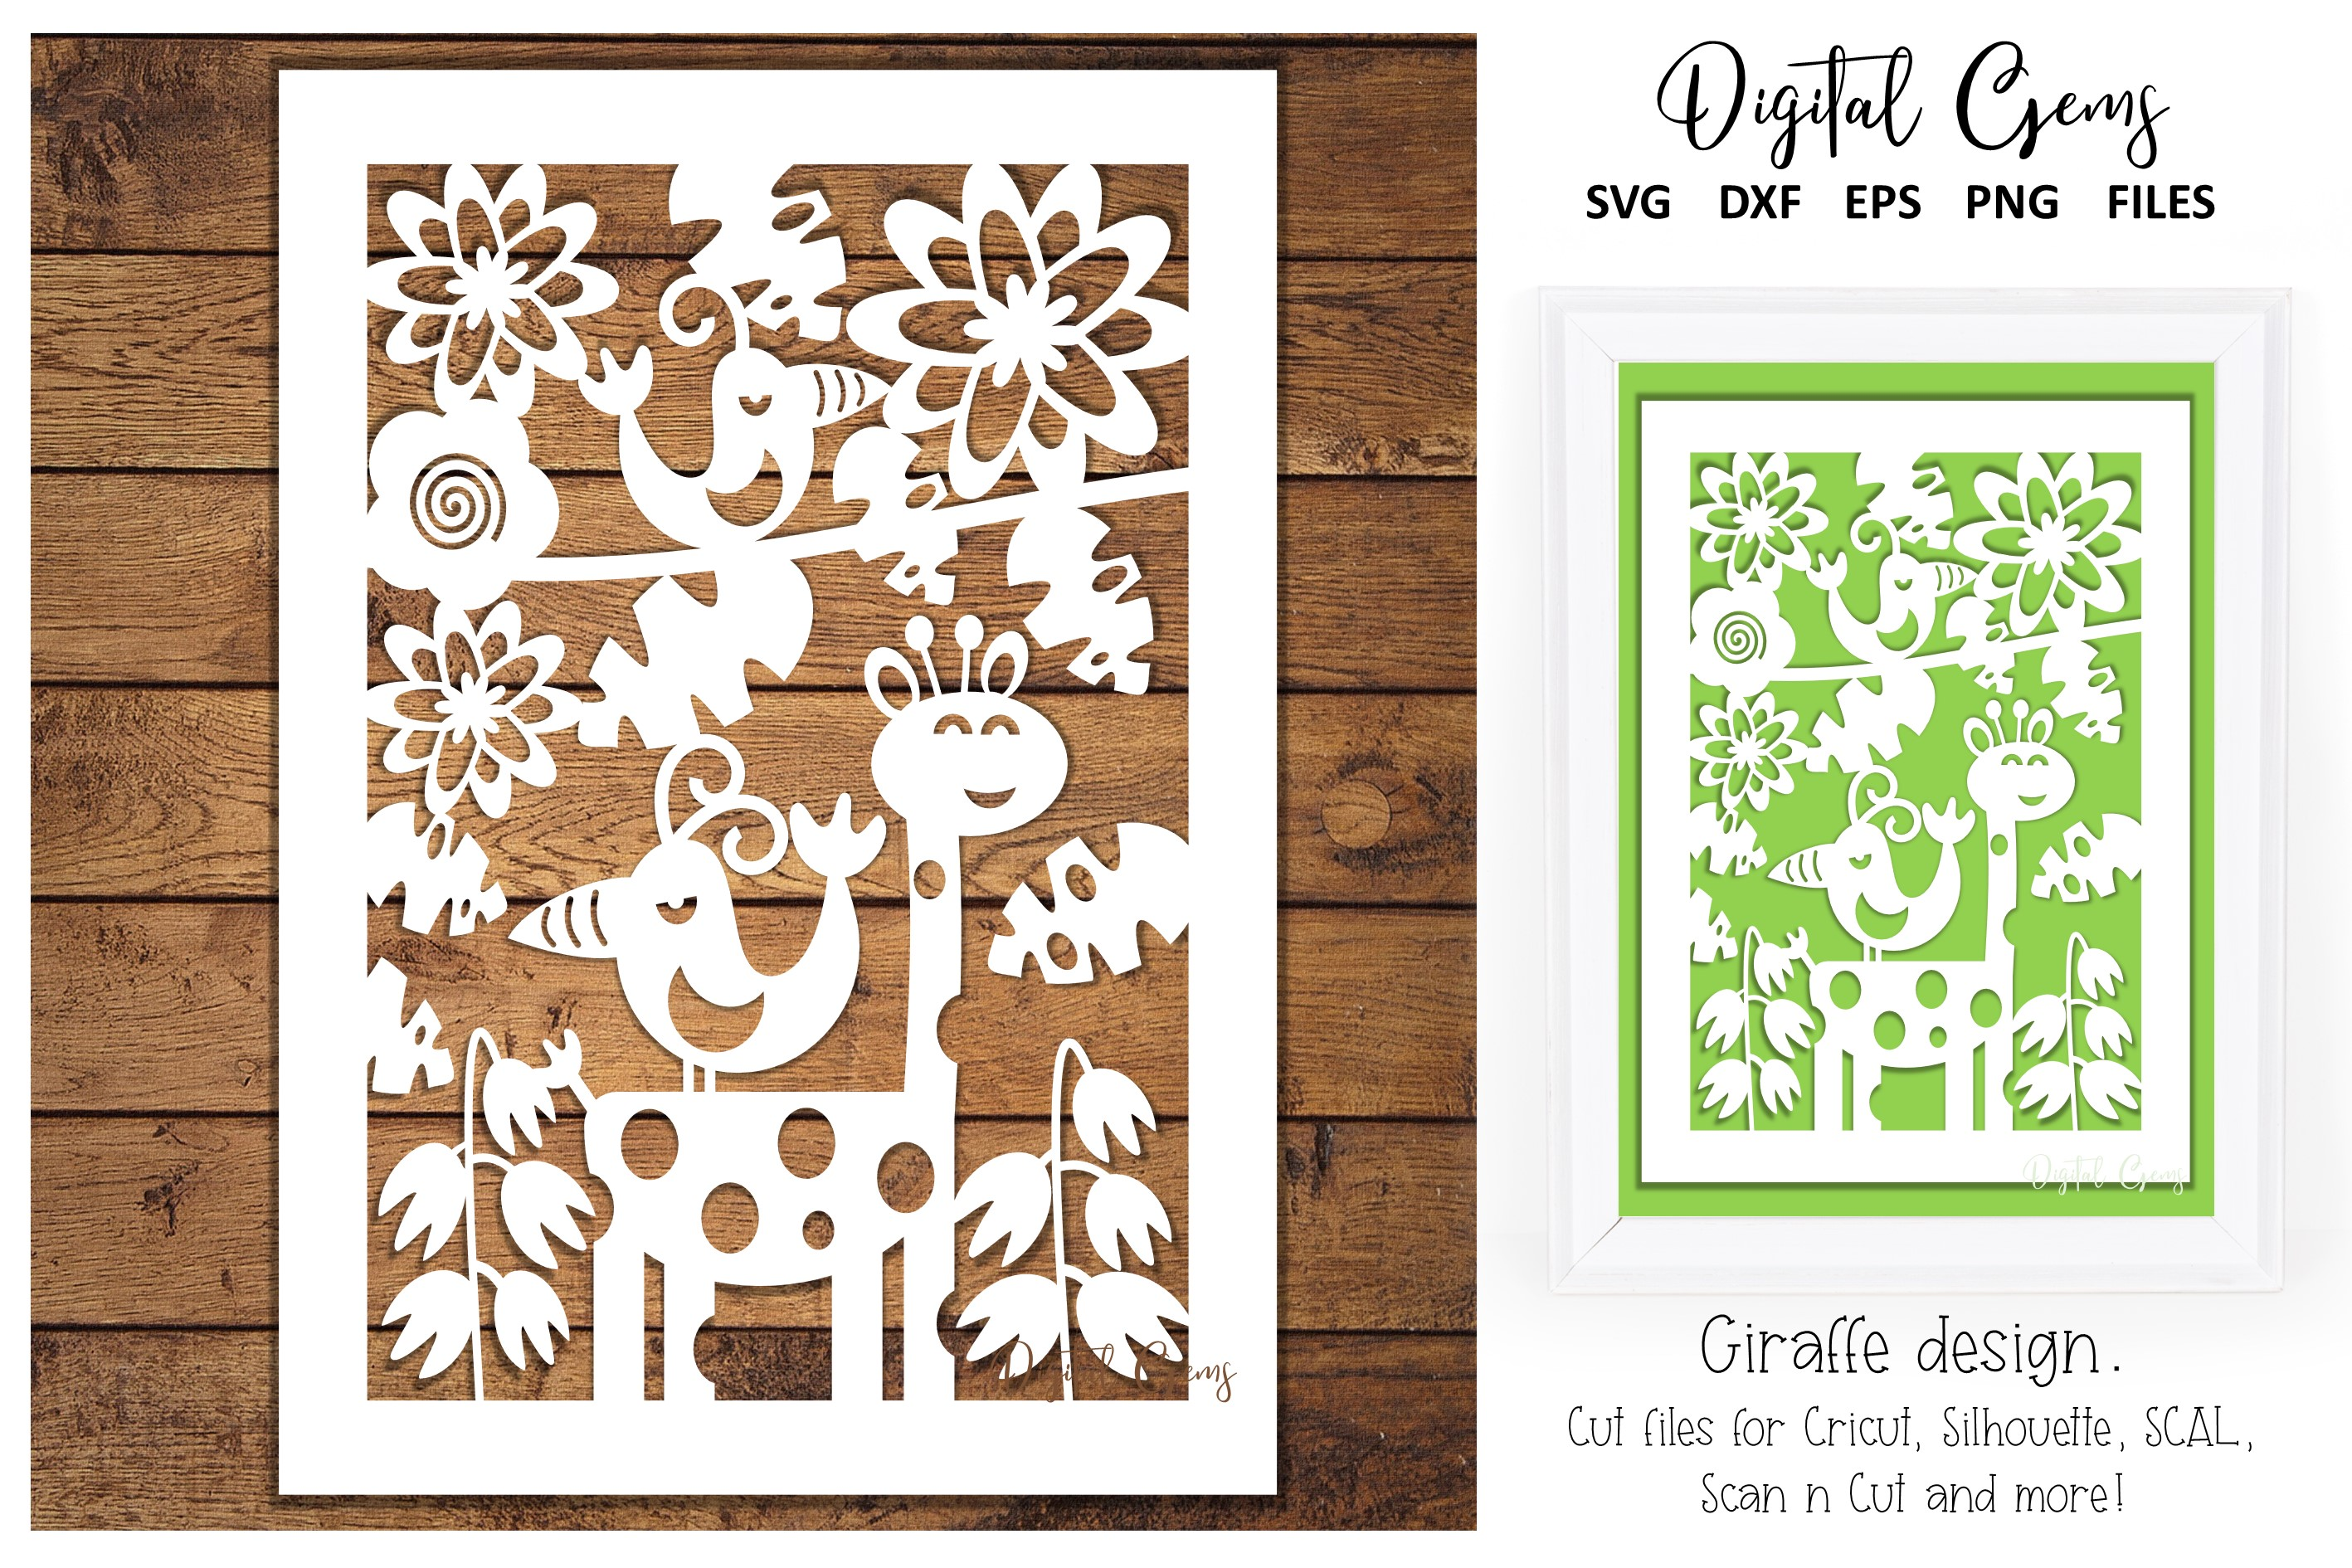 Download Free Giraffe Papercut Design Graphic By Digital Gems Creative Fabrica for Cricut Explore, Silhouette and other cutting machines.